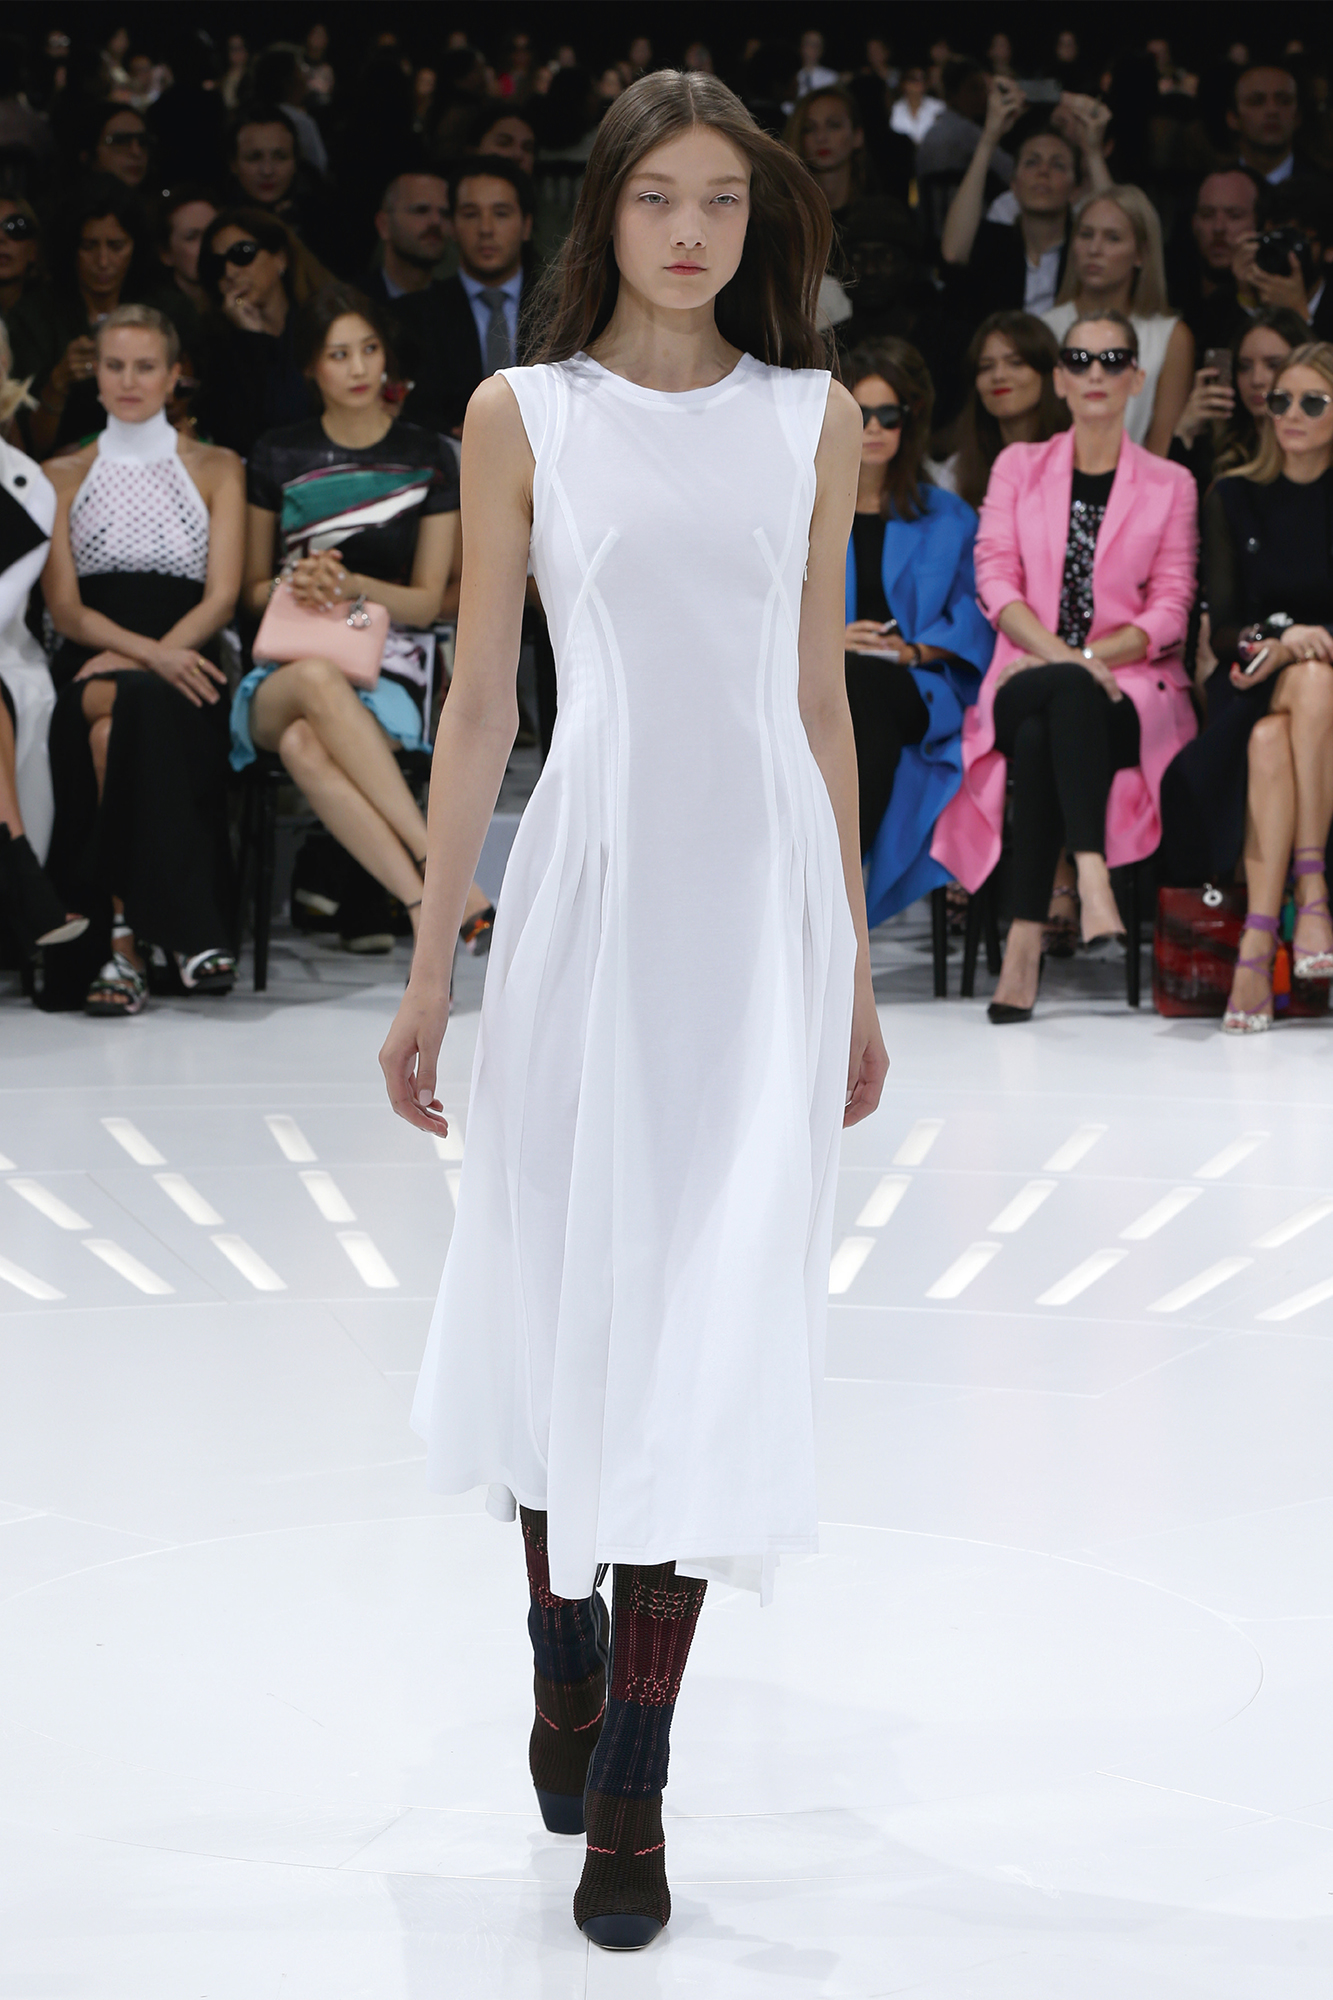 Christian Dior Haute Couture Spring-Summer Ready To Wear Dresses & Accessories Collection 2015-16 (6)